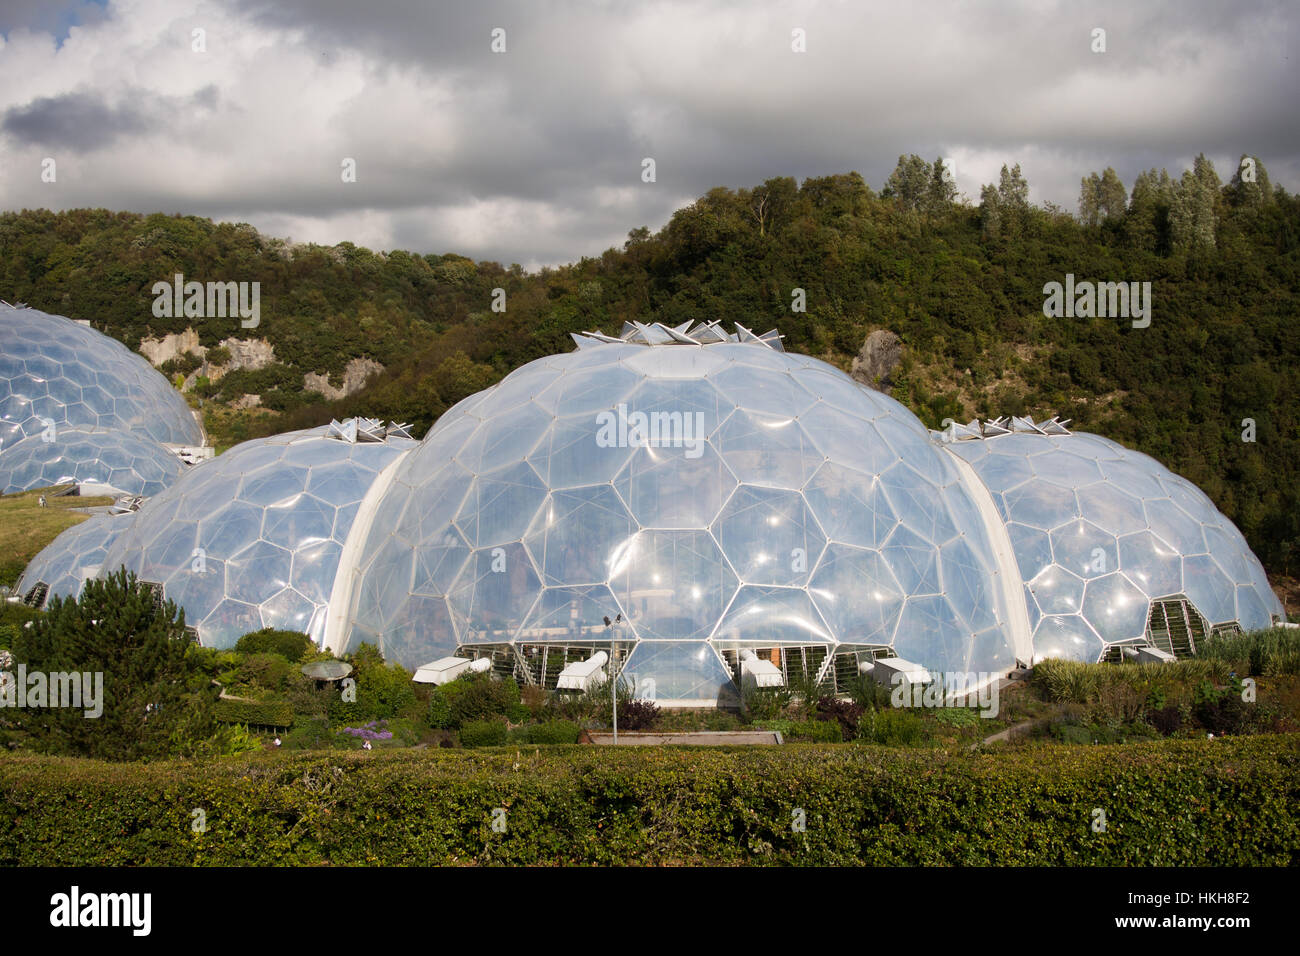 The Eden project, Cornwall, UK - Stock Image